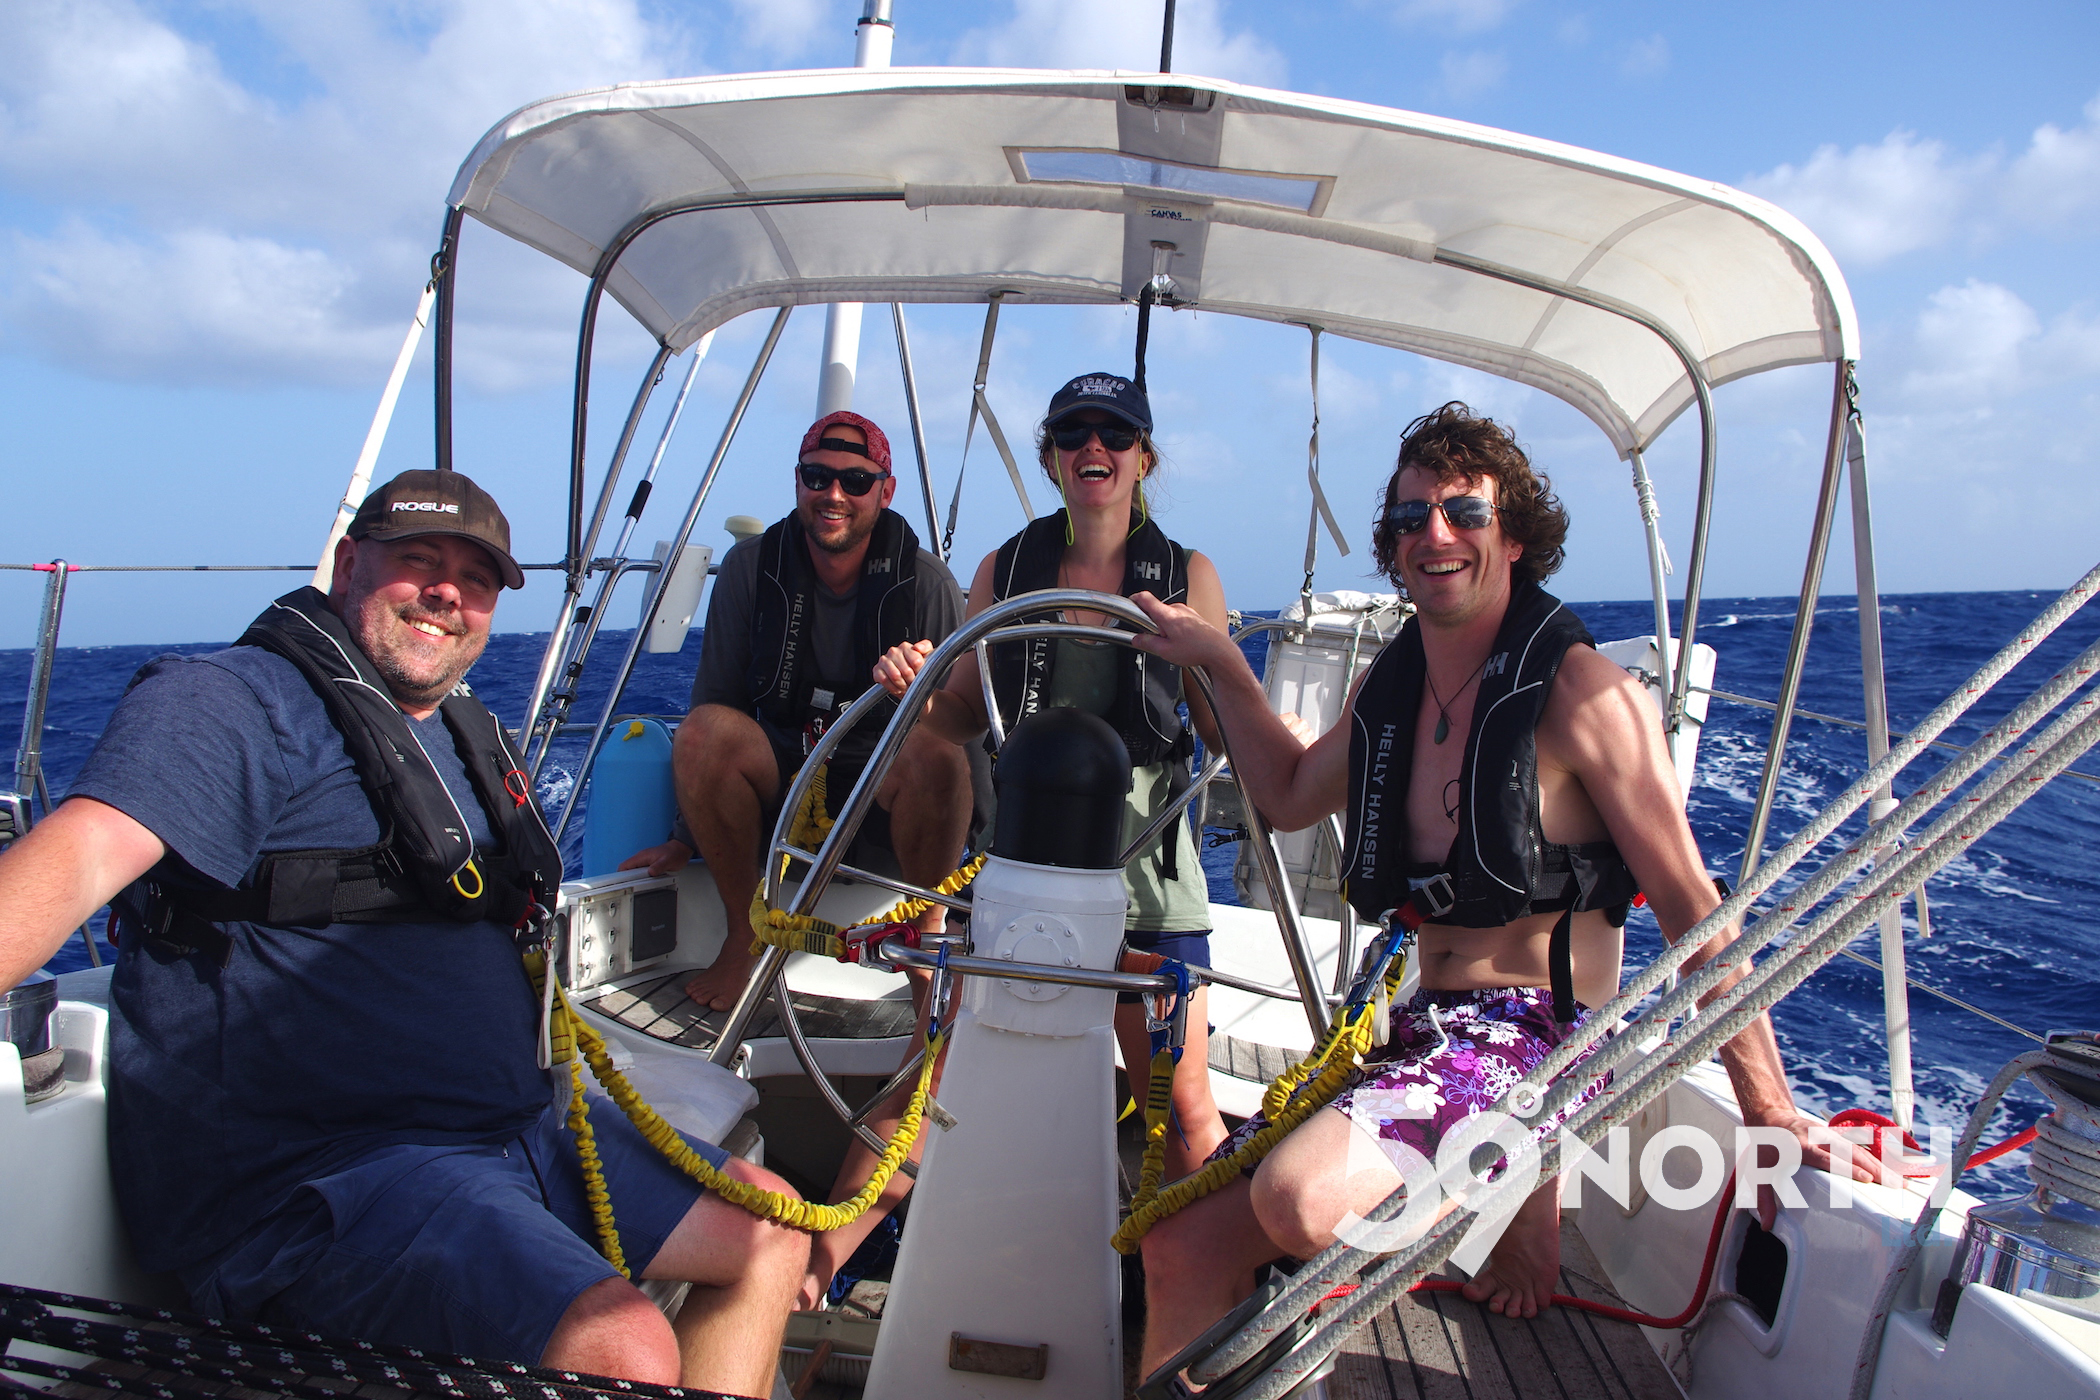 Leg 1, 2016 from the BVI. Got turned around due to a broken furler. Jan 2016